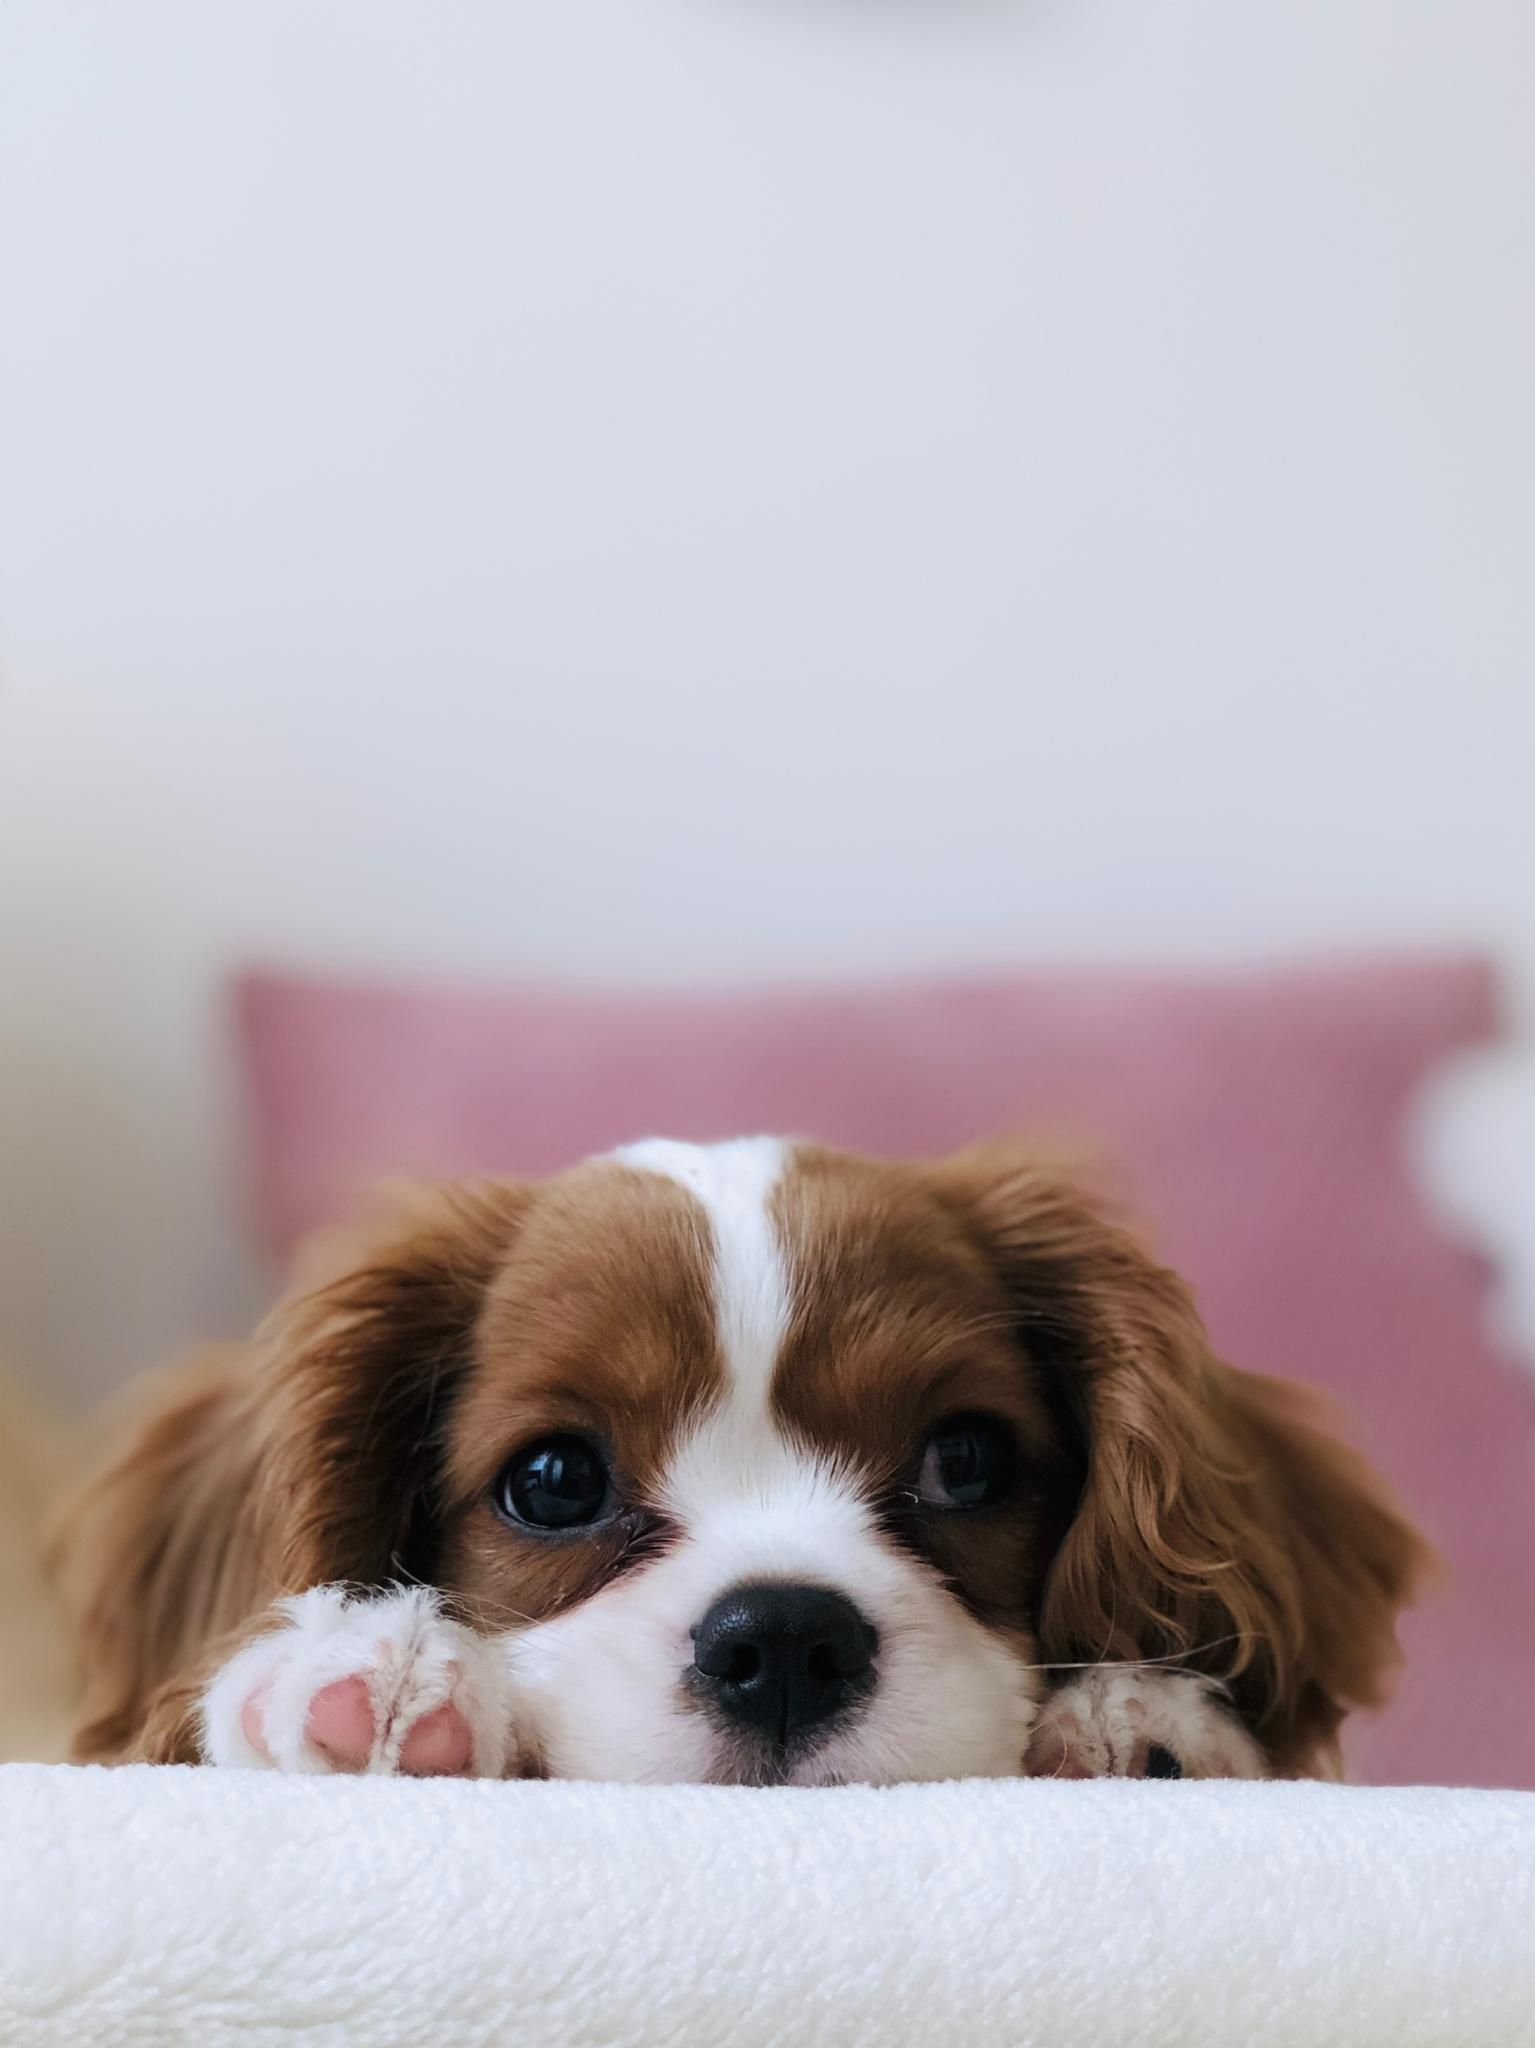 Brown and white puppy pet